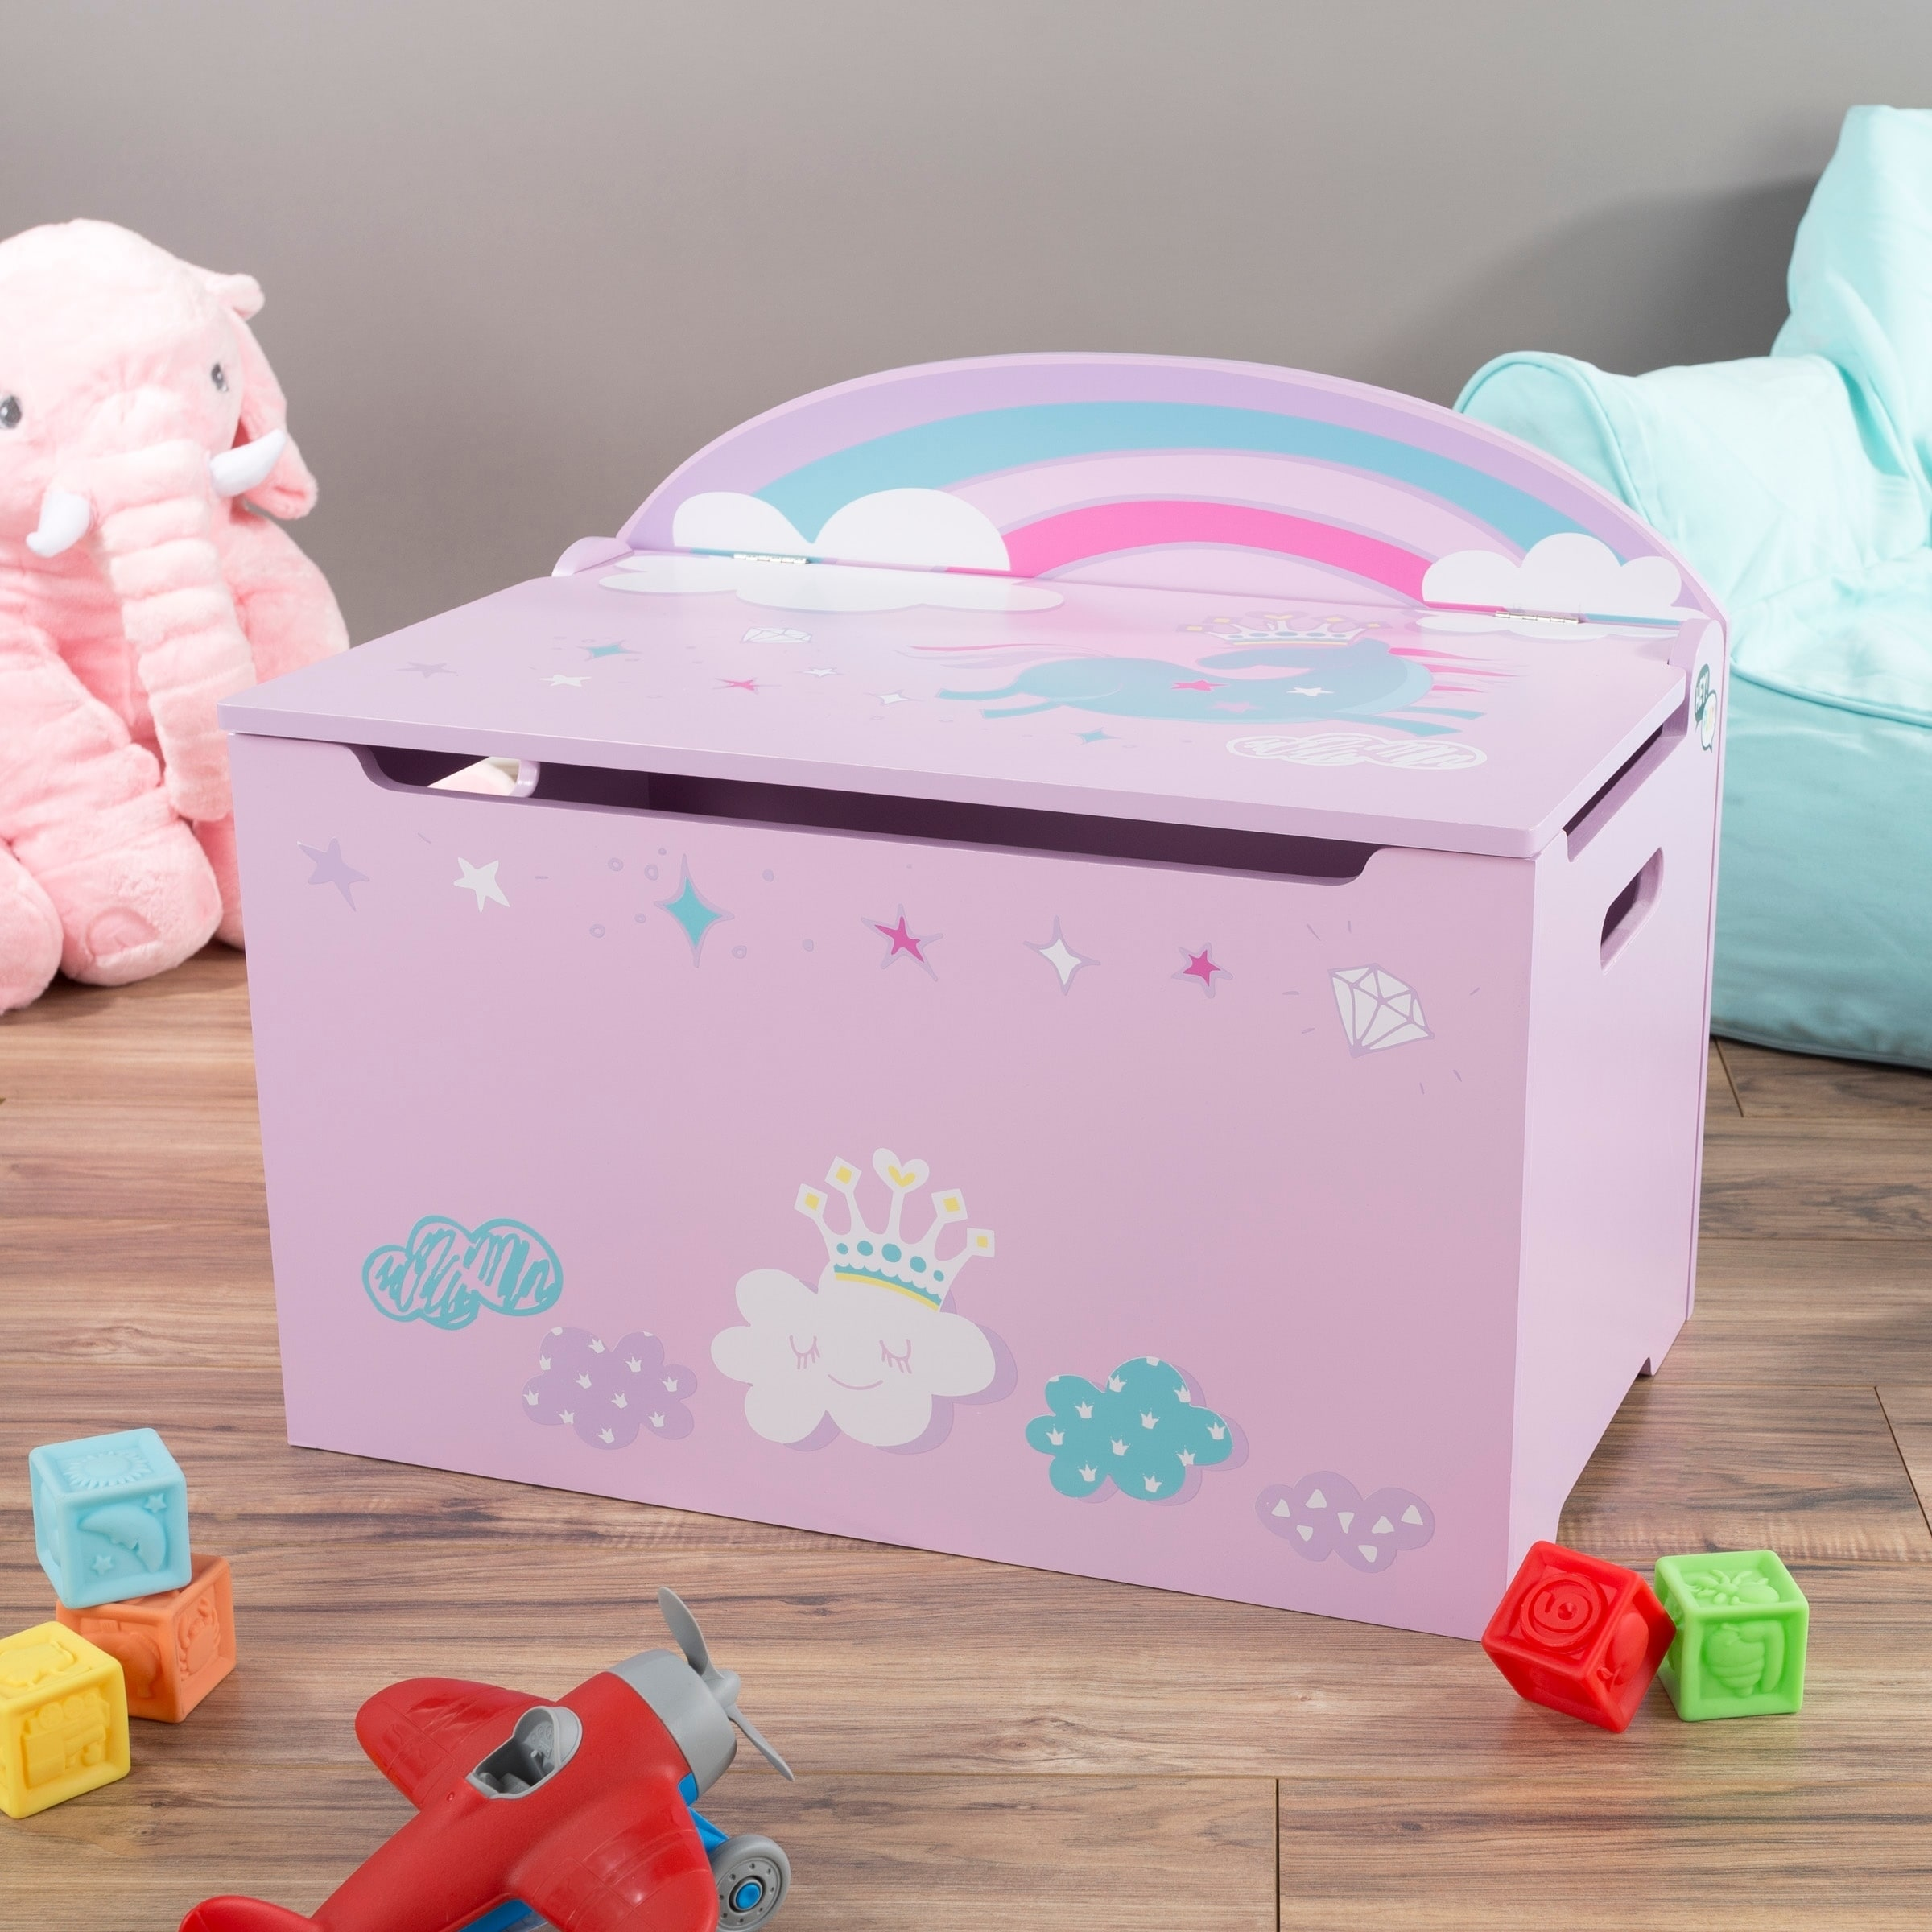 Toy Box Toys Toy Box Storage Bench Seat Kids Organization Chest Toys Stuffed Animals Clothes Blankets Bedroom And More By Hey Play